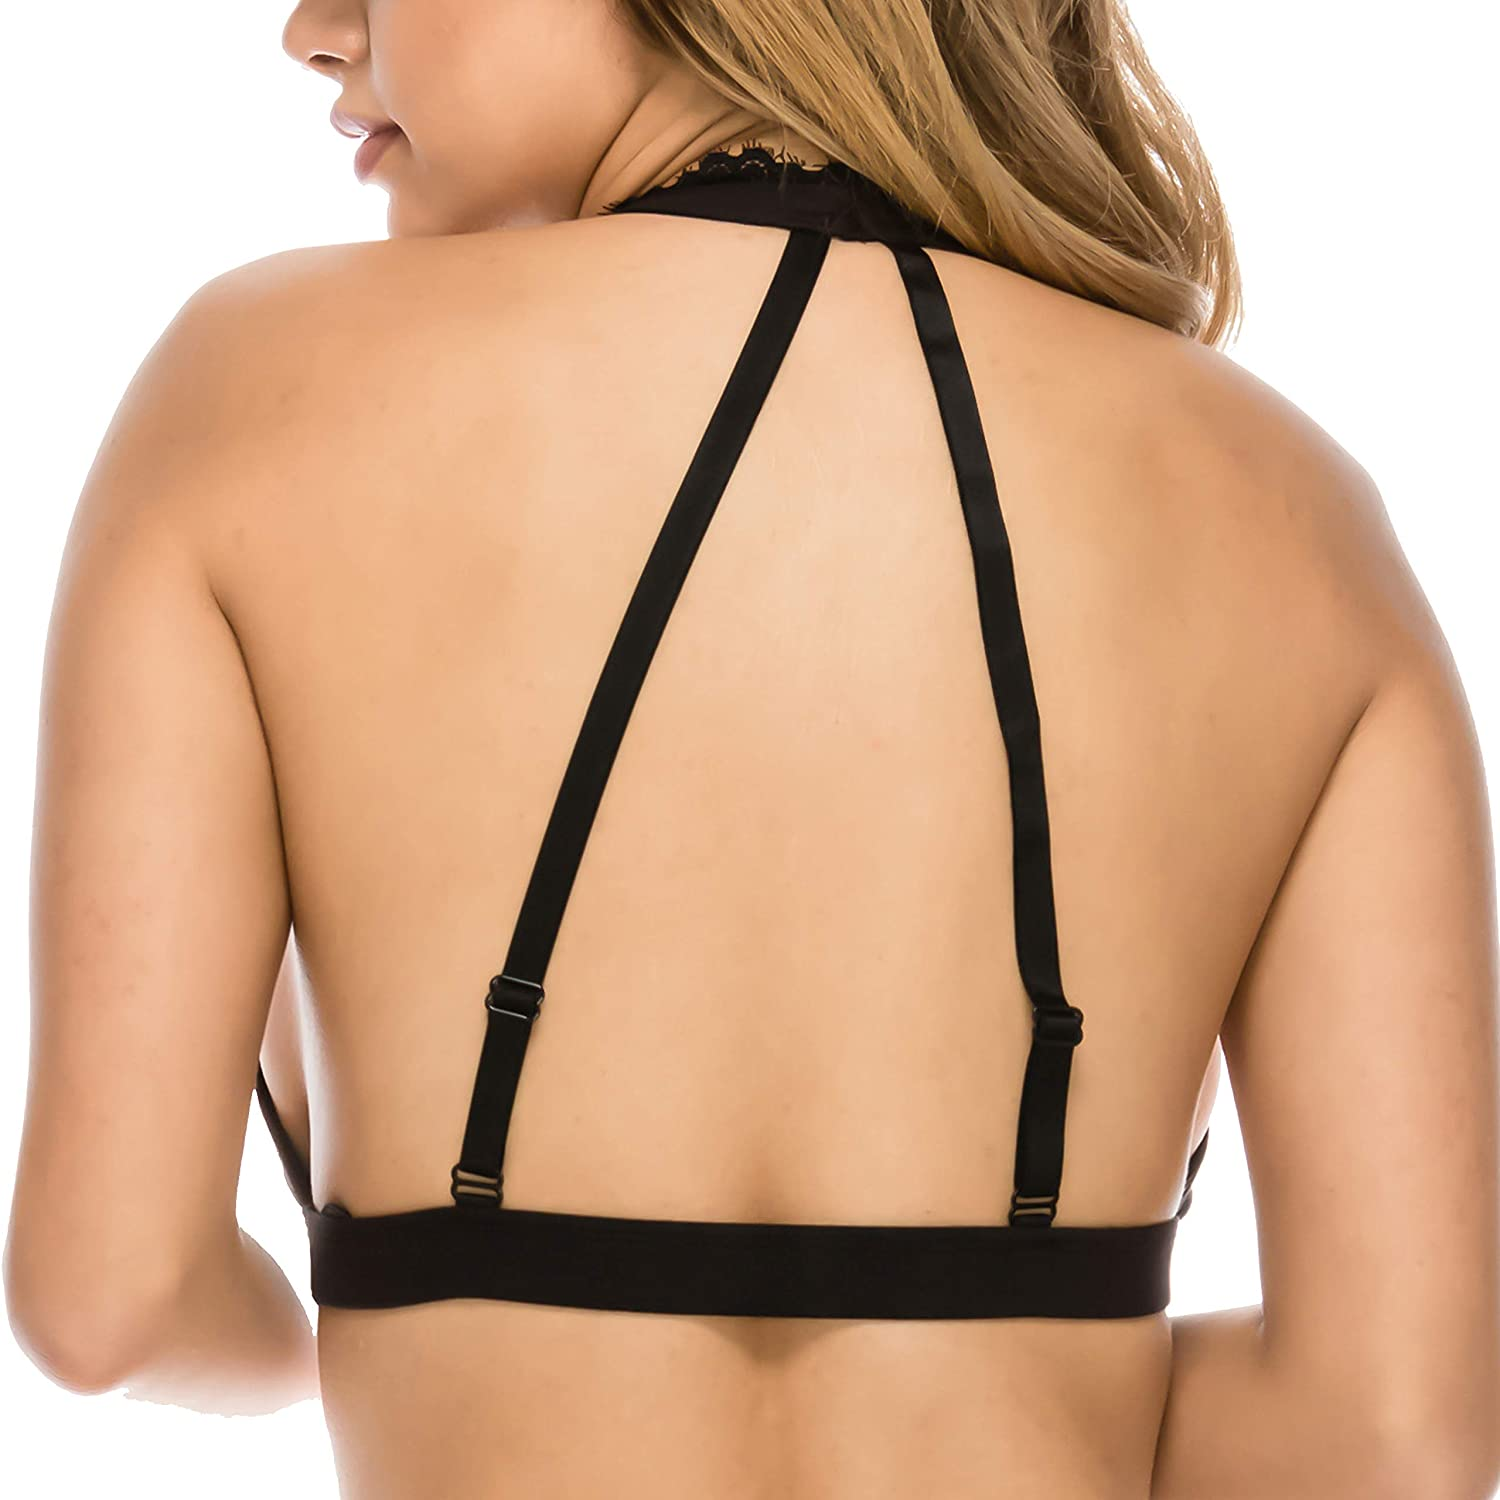 13638546696a06 Brushed Microfiber Bralette Elastic Band Triangle Halter Bra at Amazon  Women s Clothing store